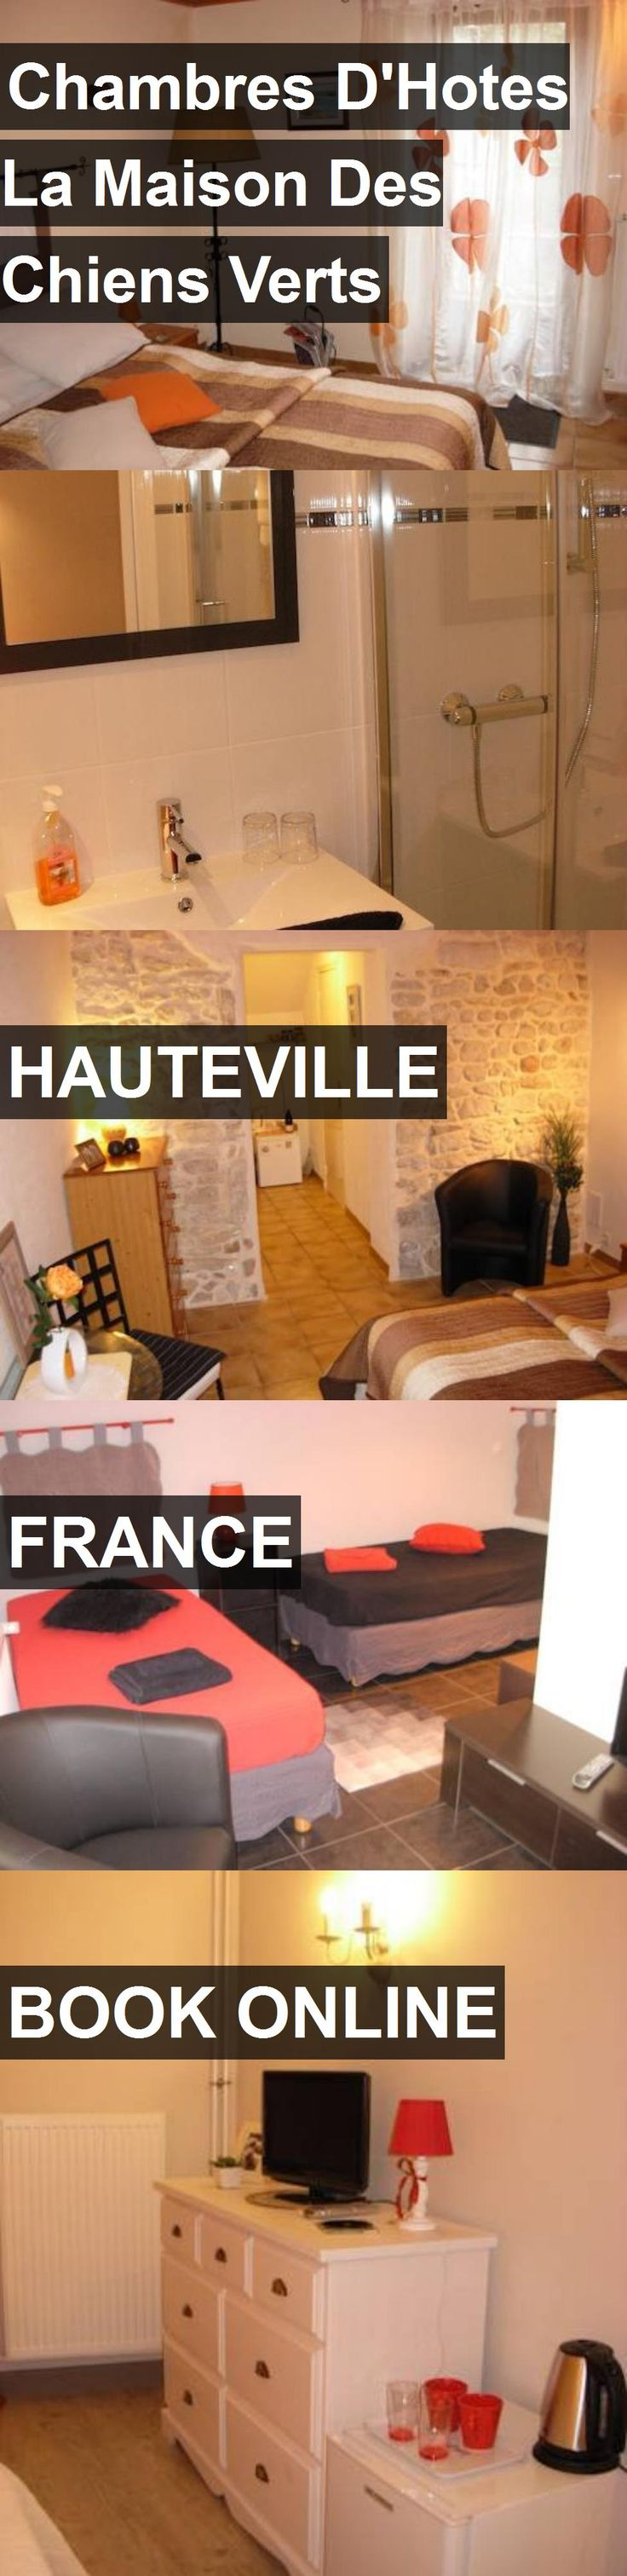 Hotel Chambres D'Hotes La Maison Des Chiens Verts in Hauteville, France. For more information, photos, reviews and best prices please follow the link. #France #Hauteville #travel #vacation #hotel